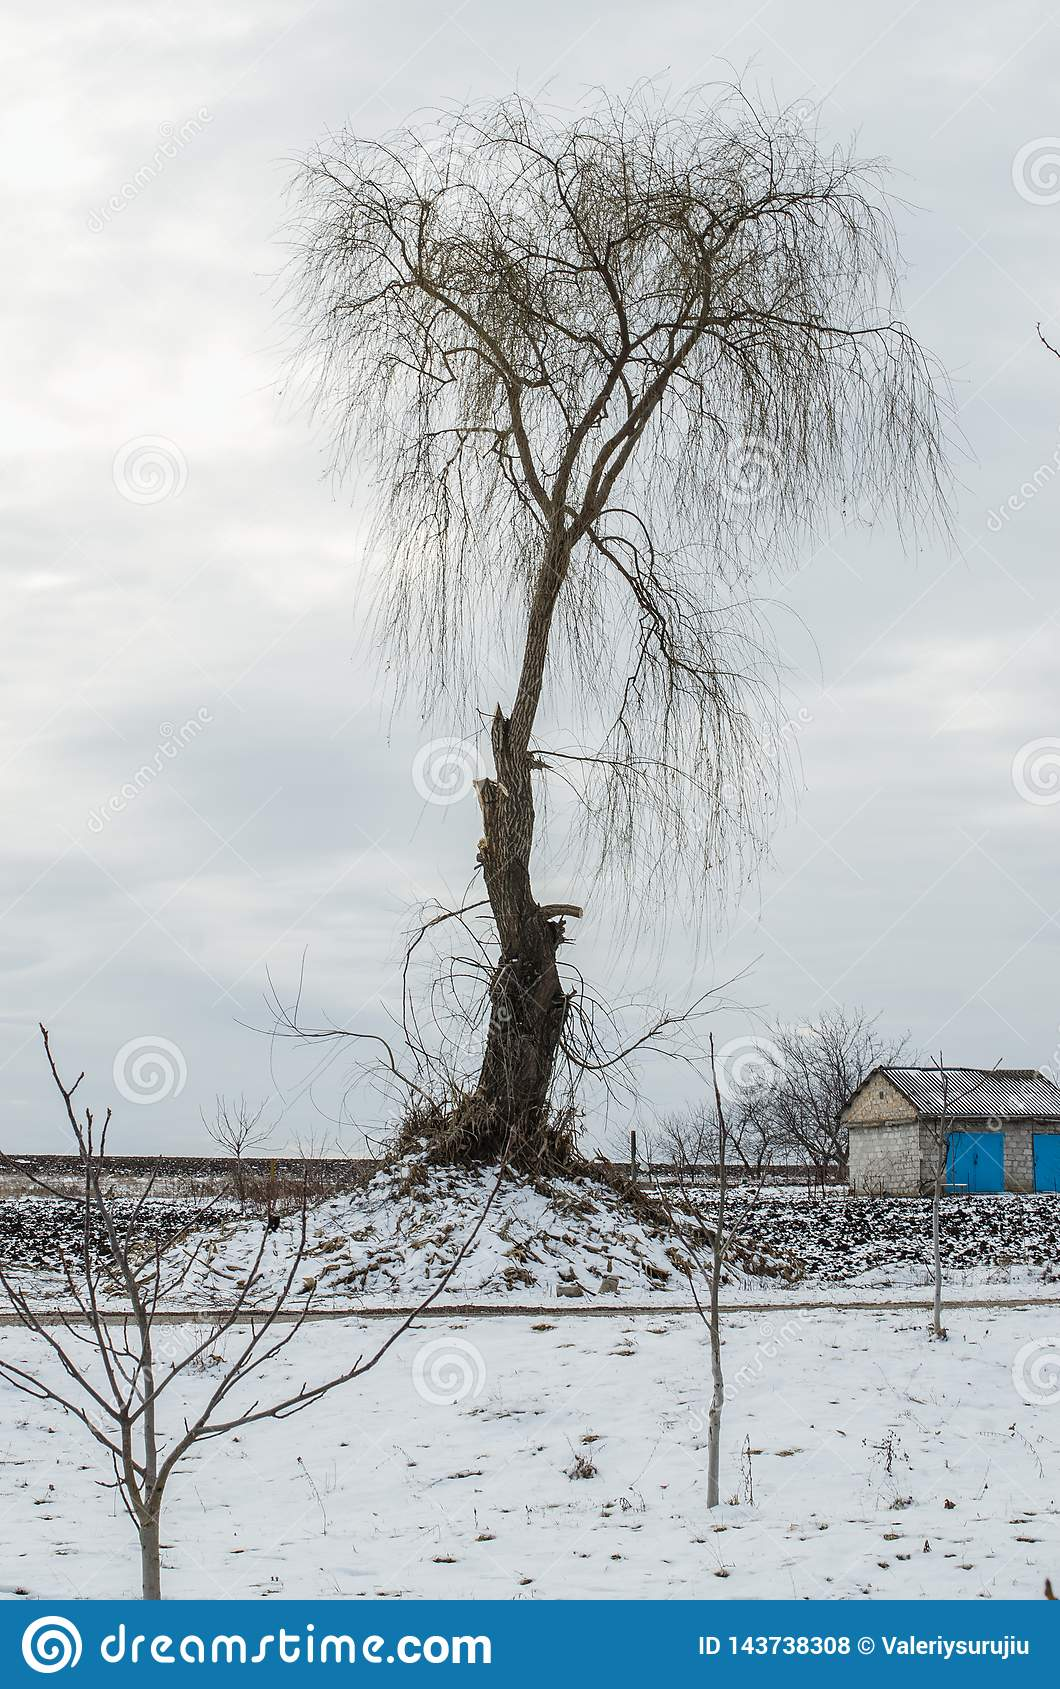 Naked Tree In Winter Season Stock Photo - Image of leaf